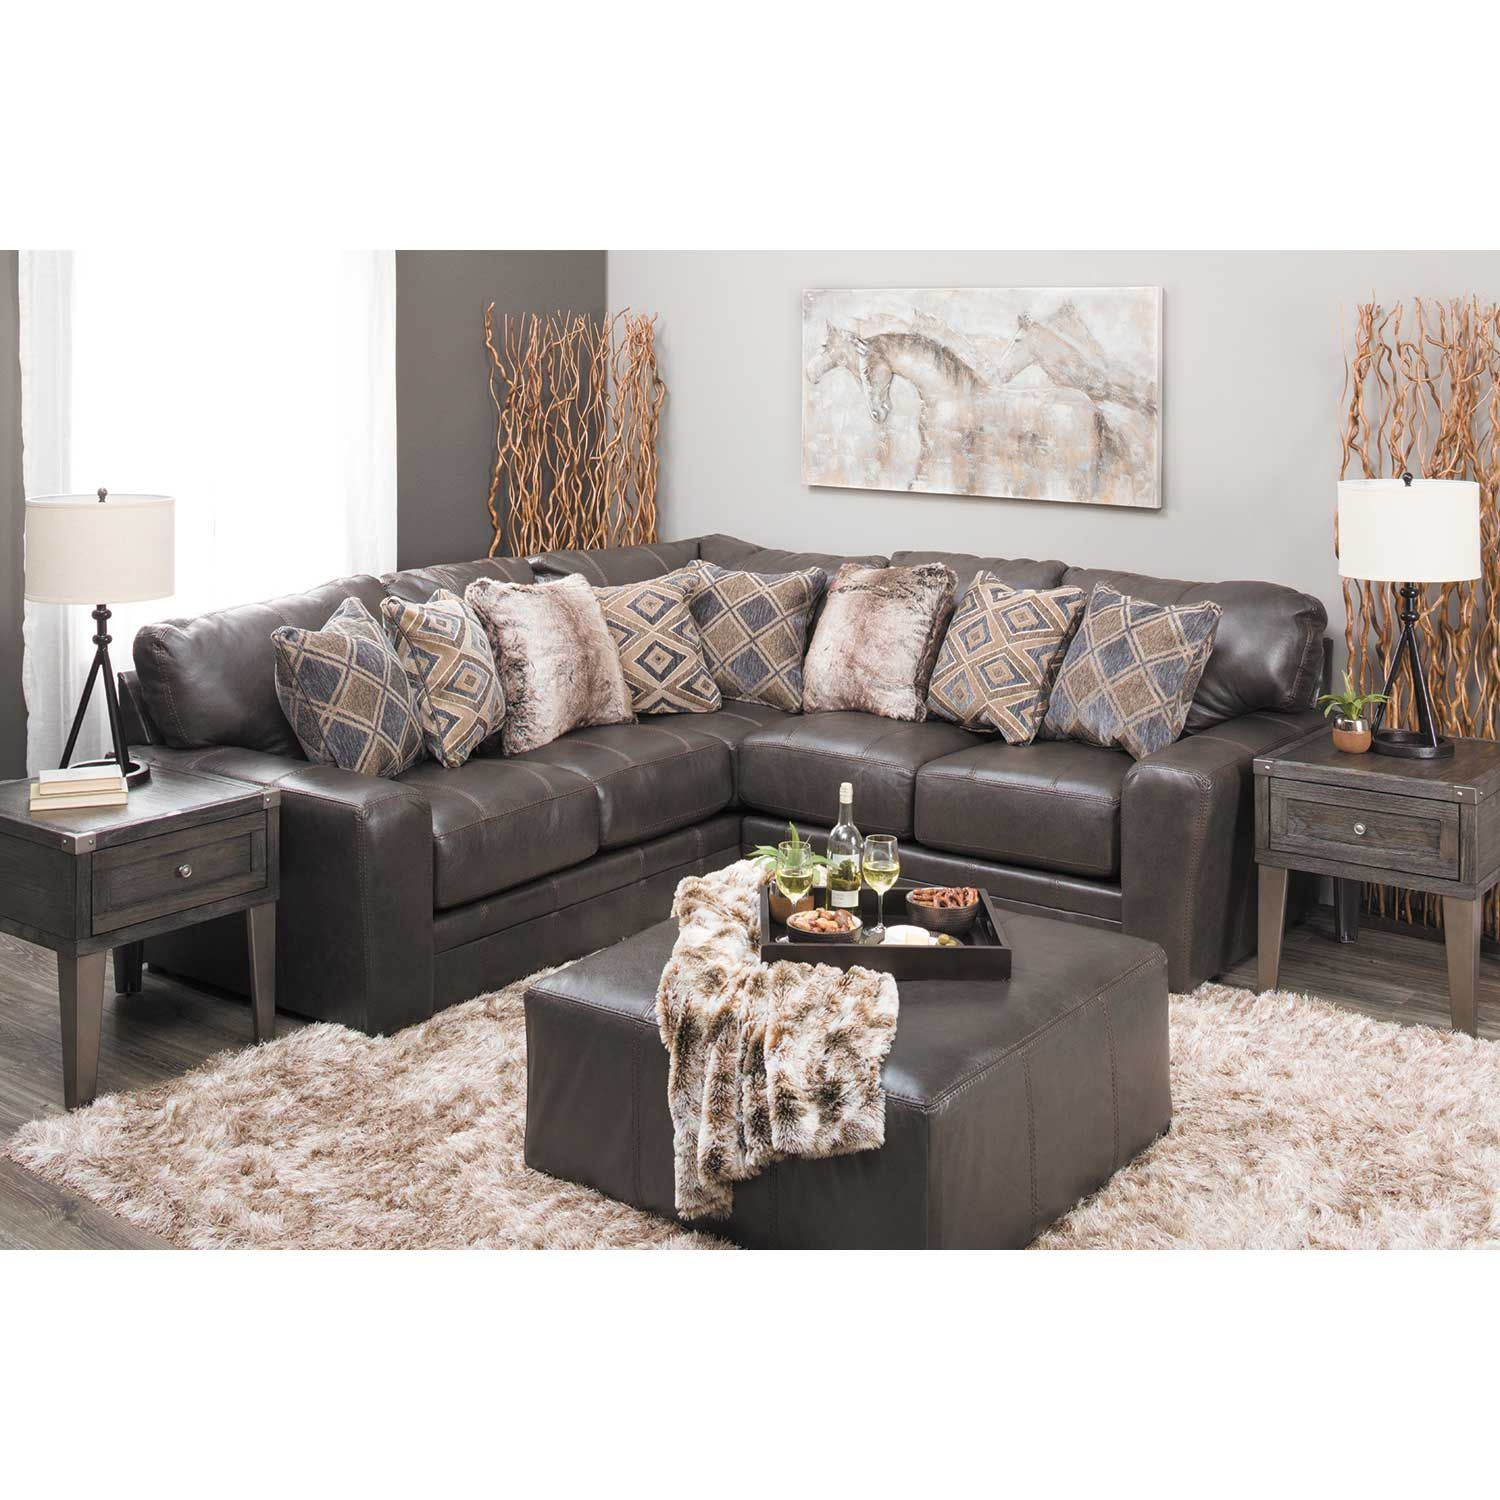 Denali 2 Piece Italian Leather Sectional With Raf Loveseat 4378 42 62 Jackson Furniture